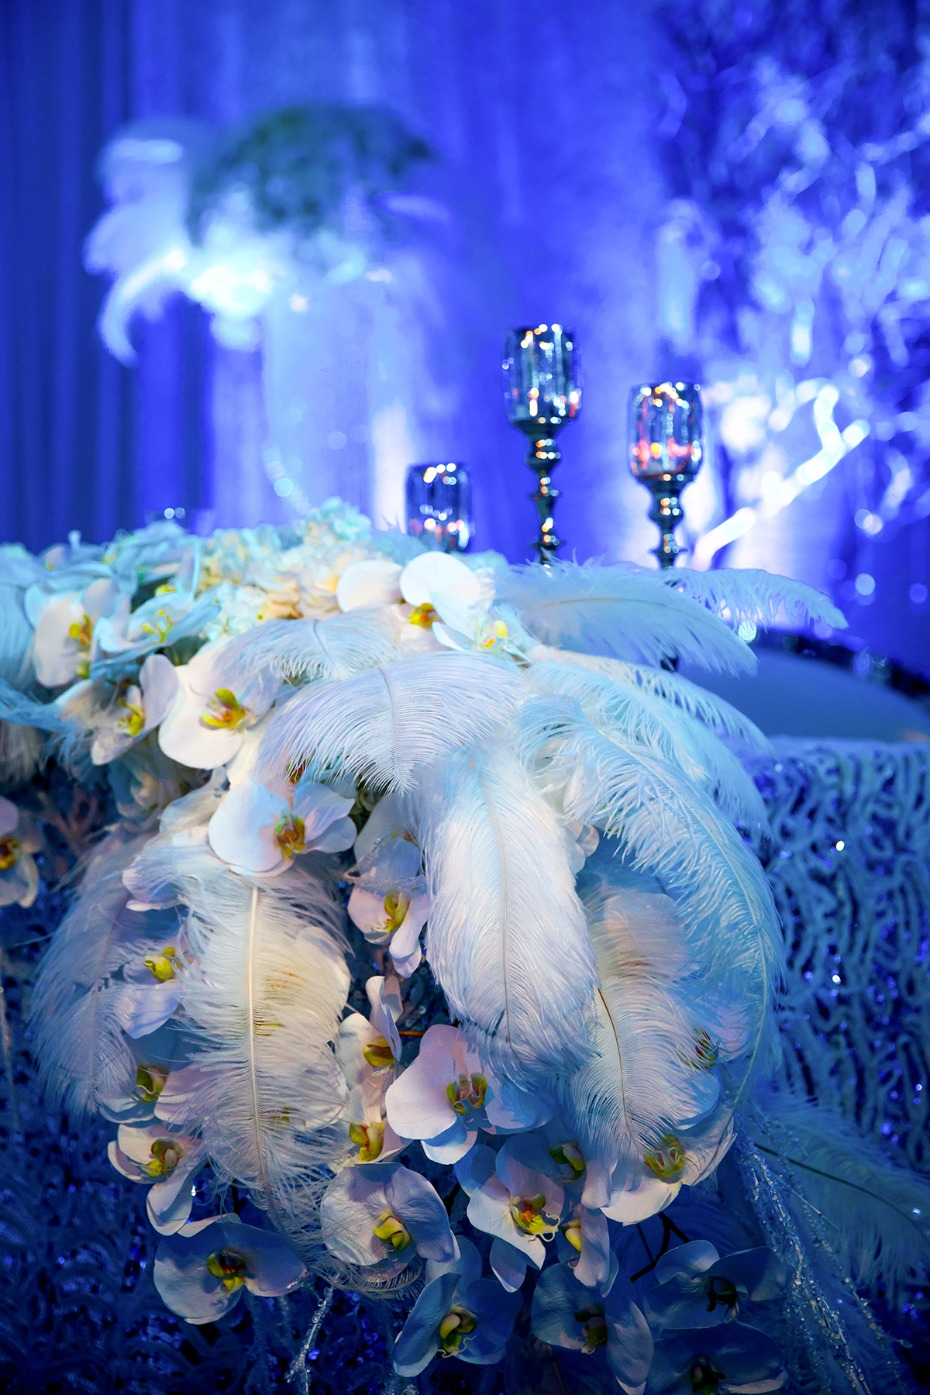 glamorous feathers and orchid winter wedding reception decor